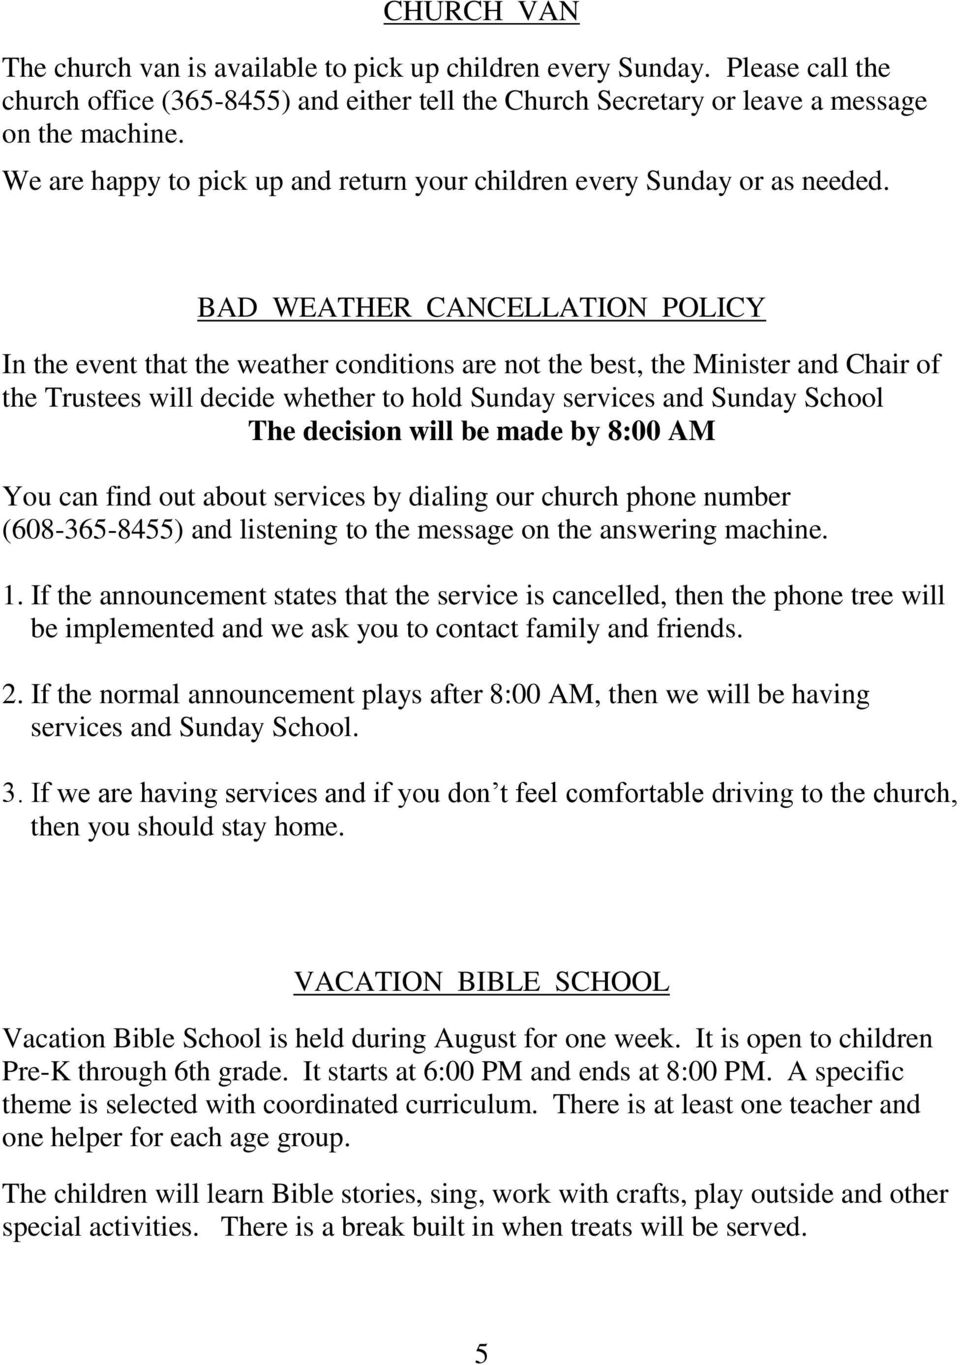 BAD WEATHER CANCELLATION POLICY In the event that the weather conditions are not the best, the Minister and Chair of the Trustees will decide whether to hold Sunday services and Sunday School The